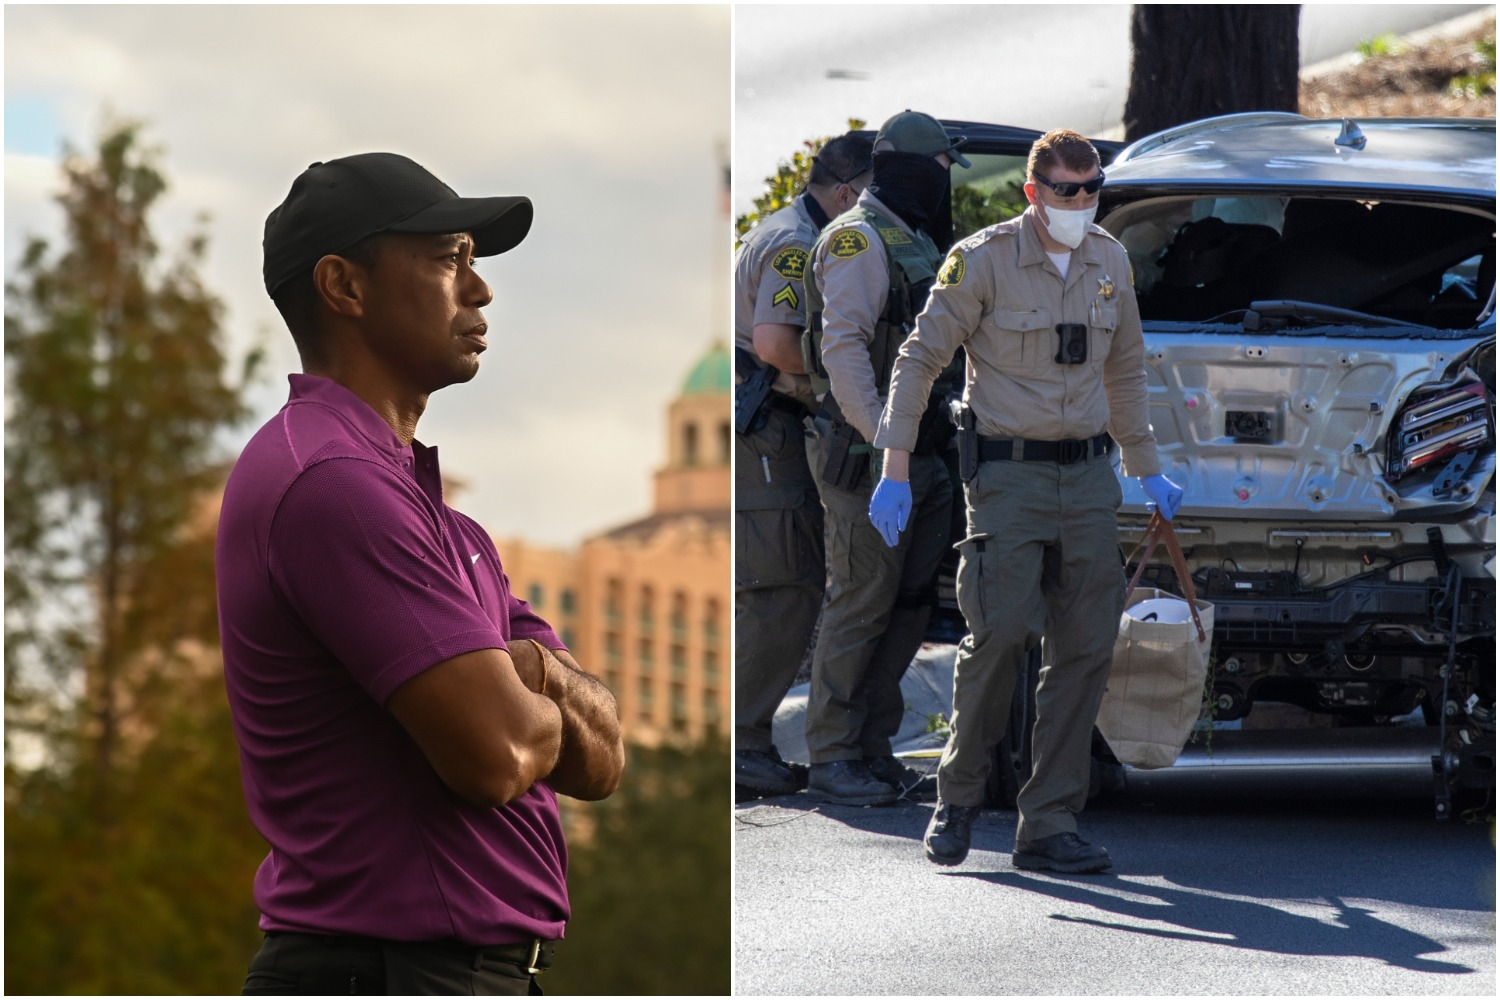 Golf legend Tiger Woods looks ahead as police deal with the aftermath of his car accident.